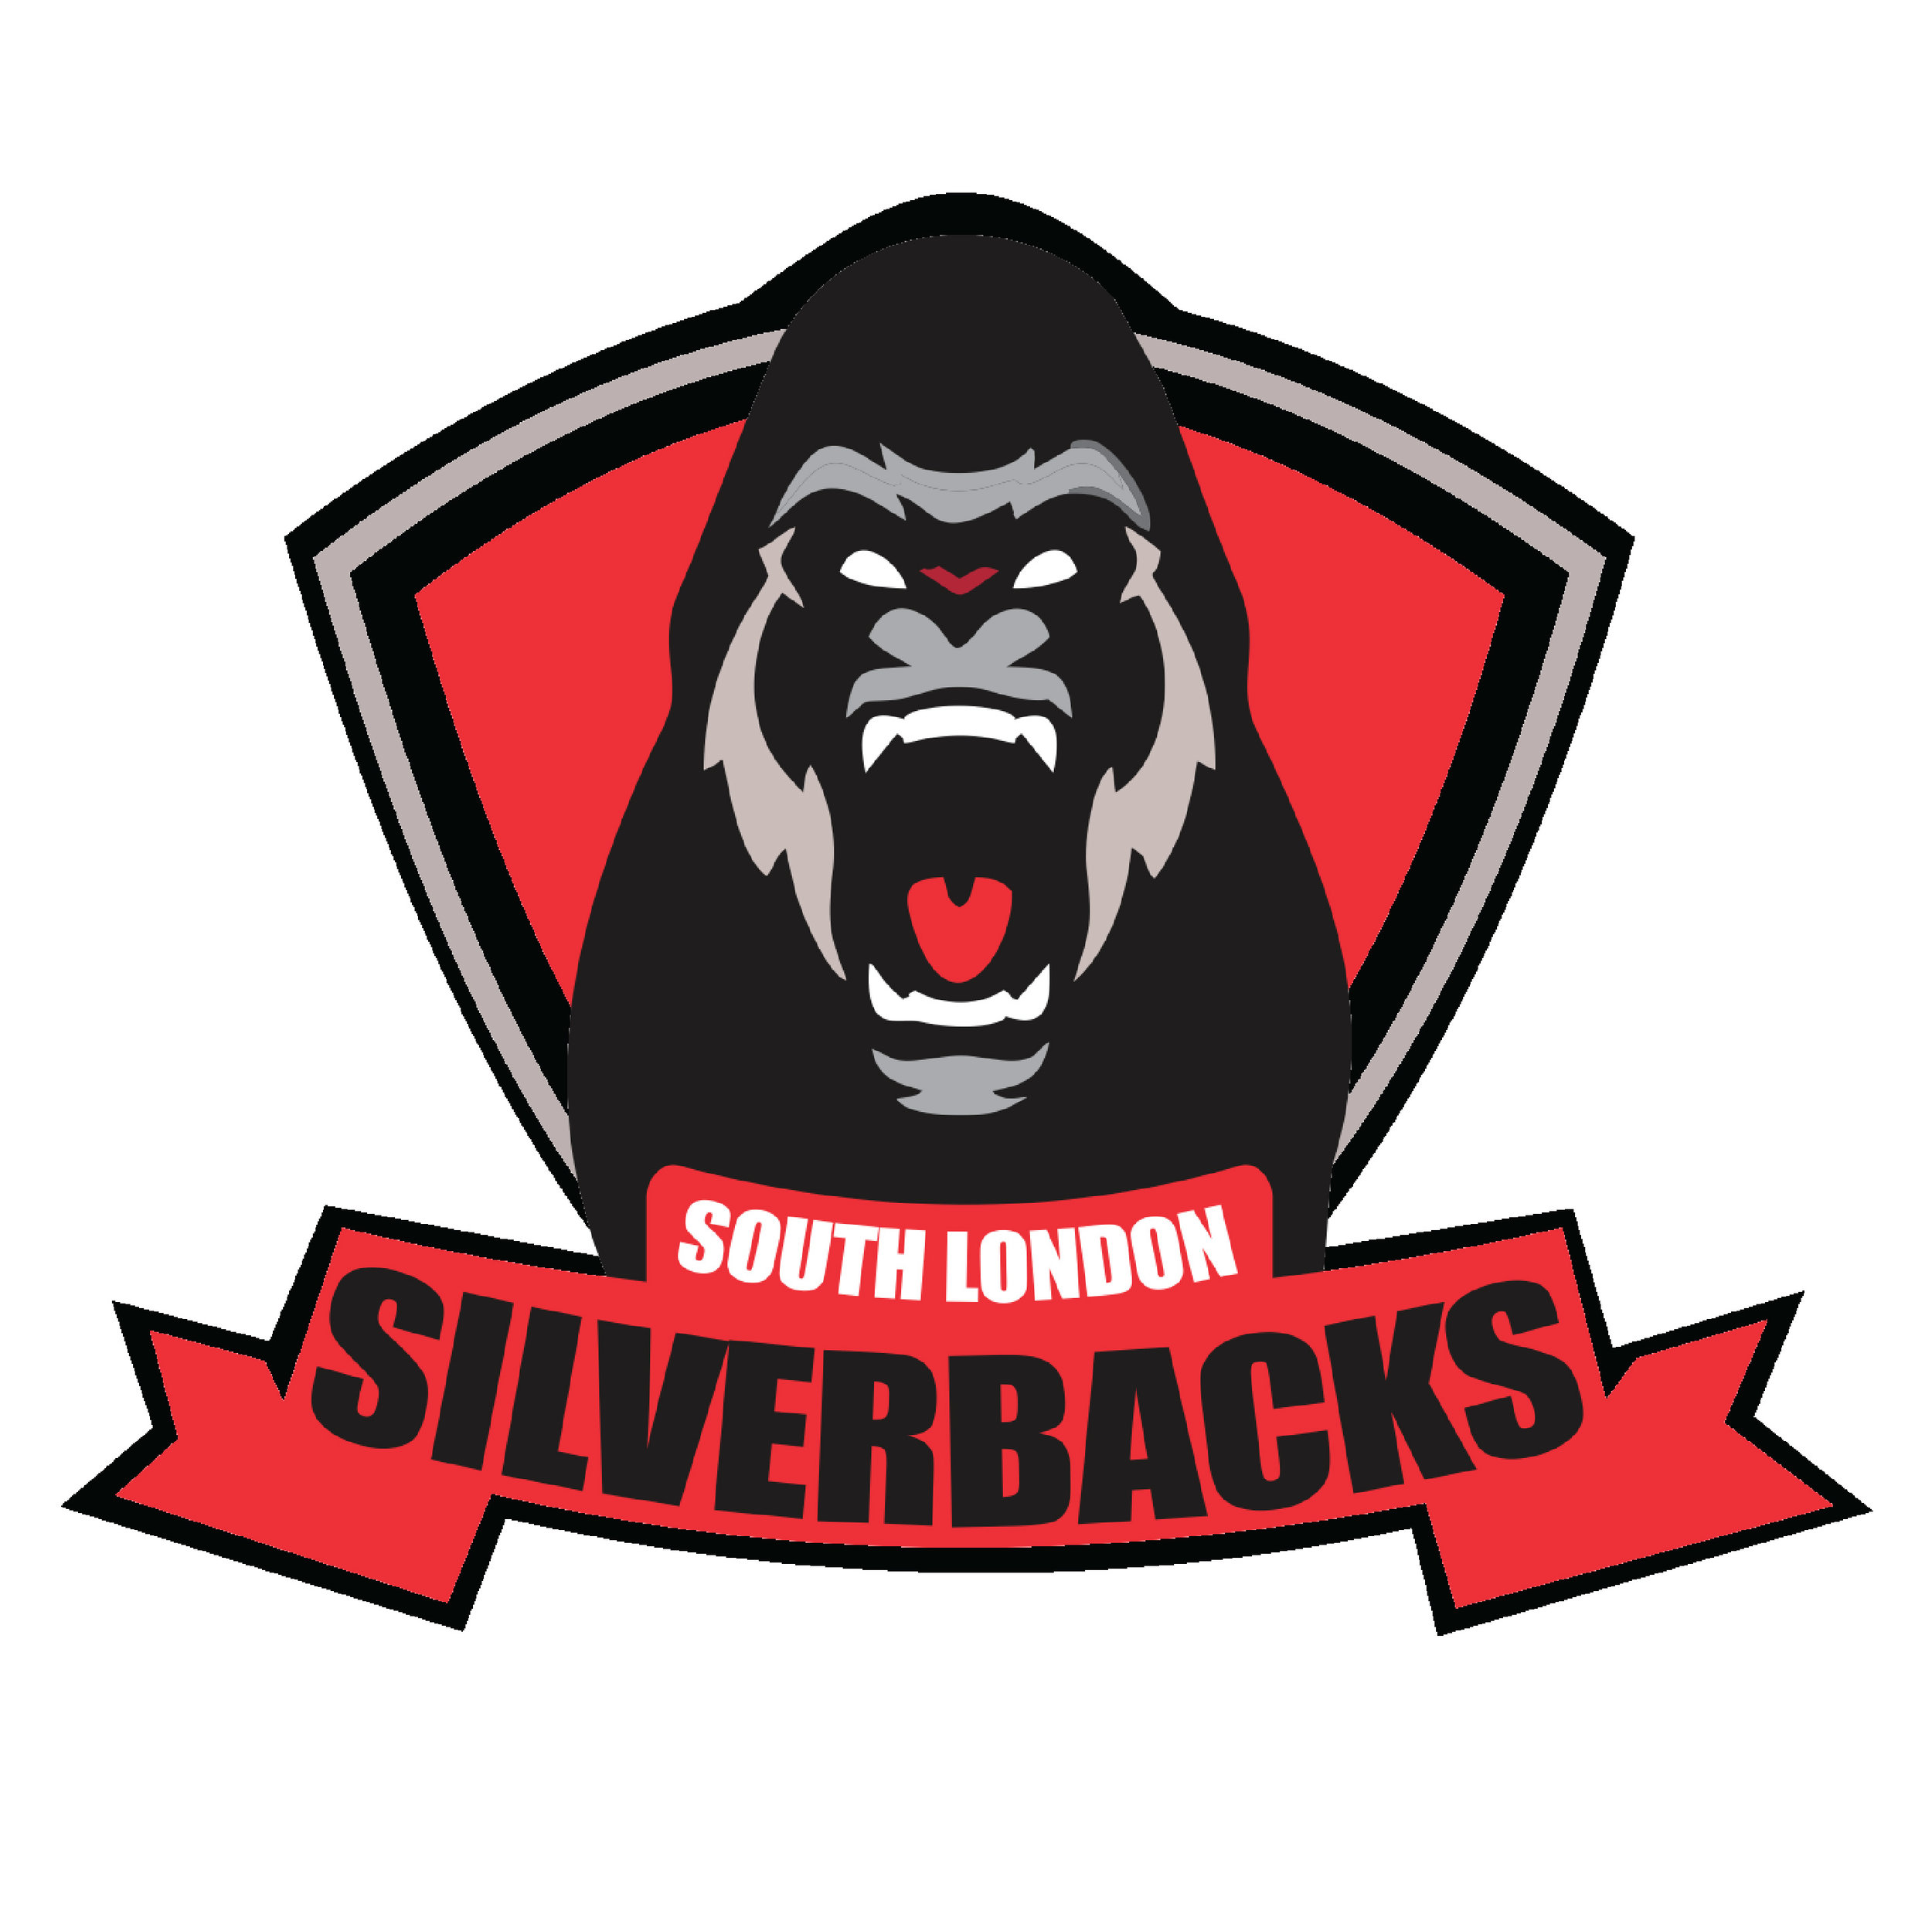 15. South London Silverbacks